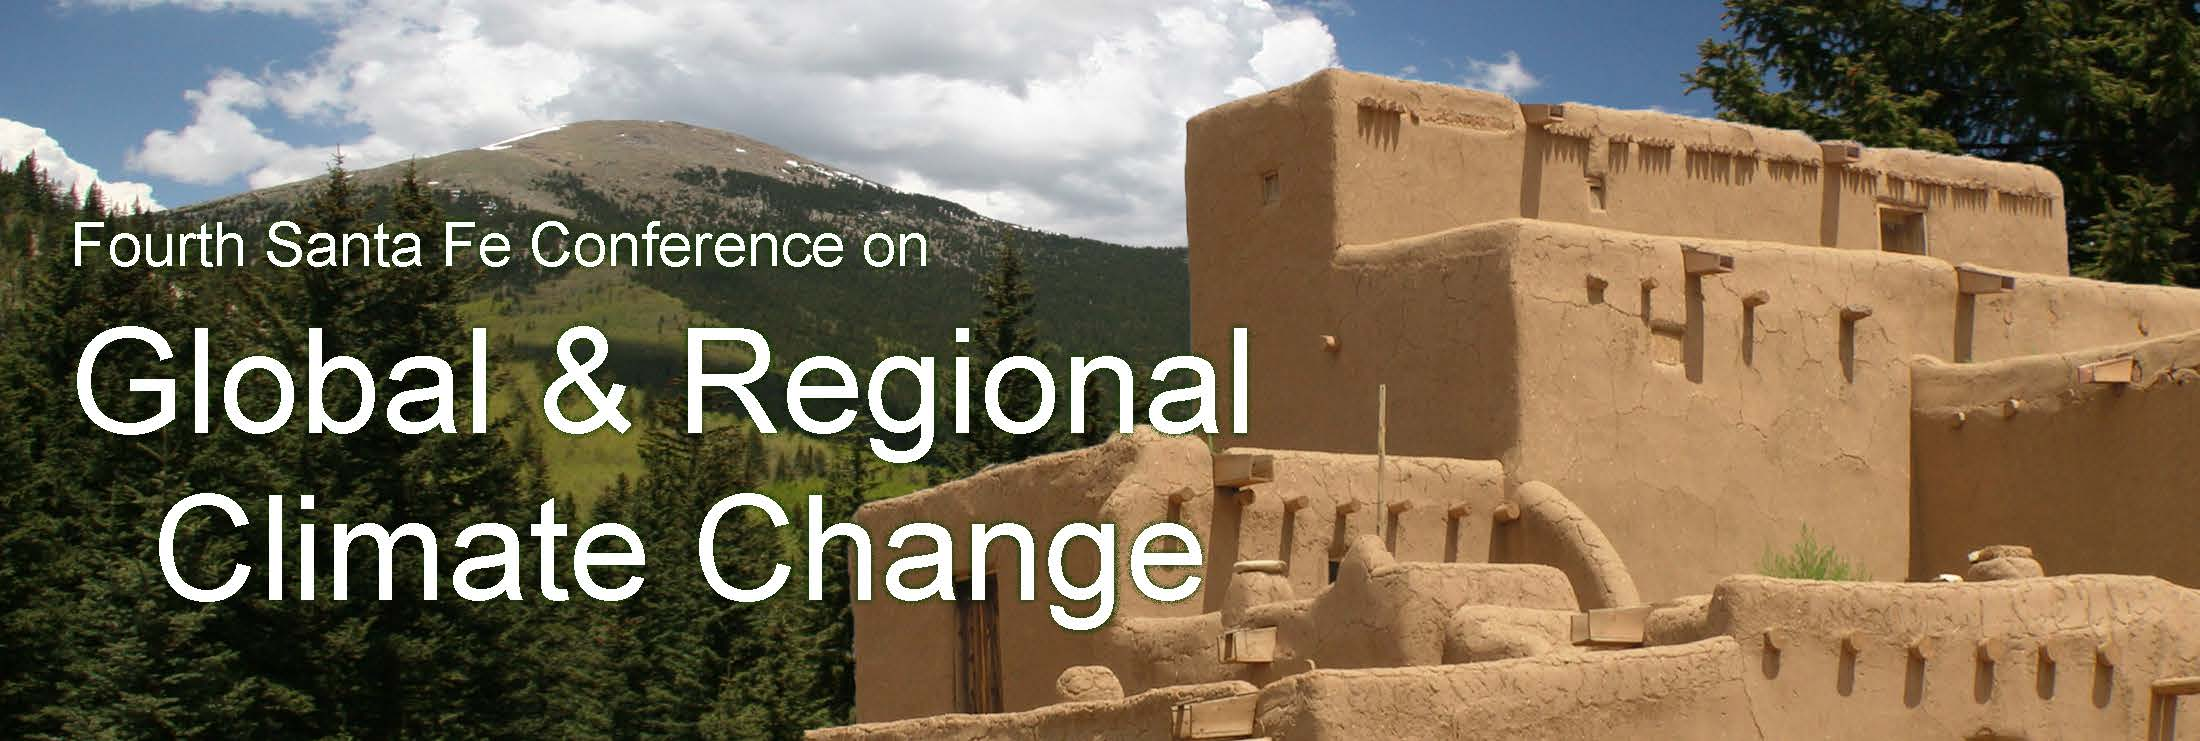 Fourth Santa Fe Conference on Global & Regional Climate Change